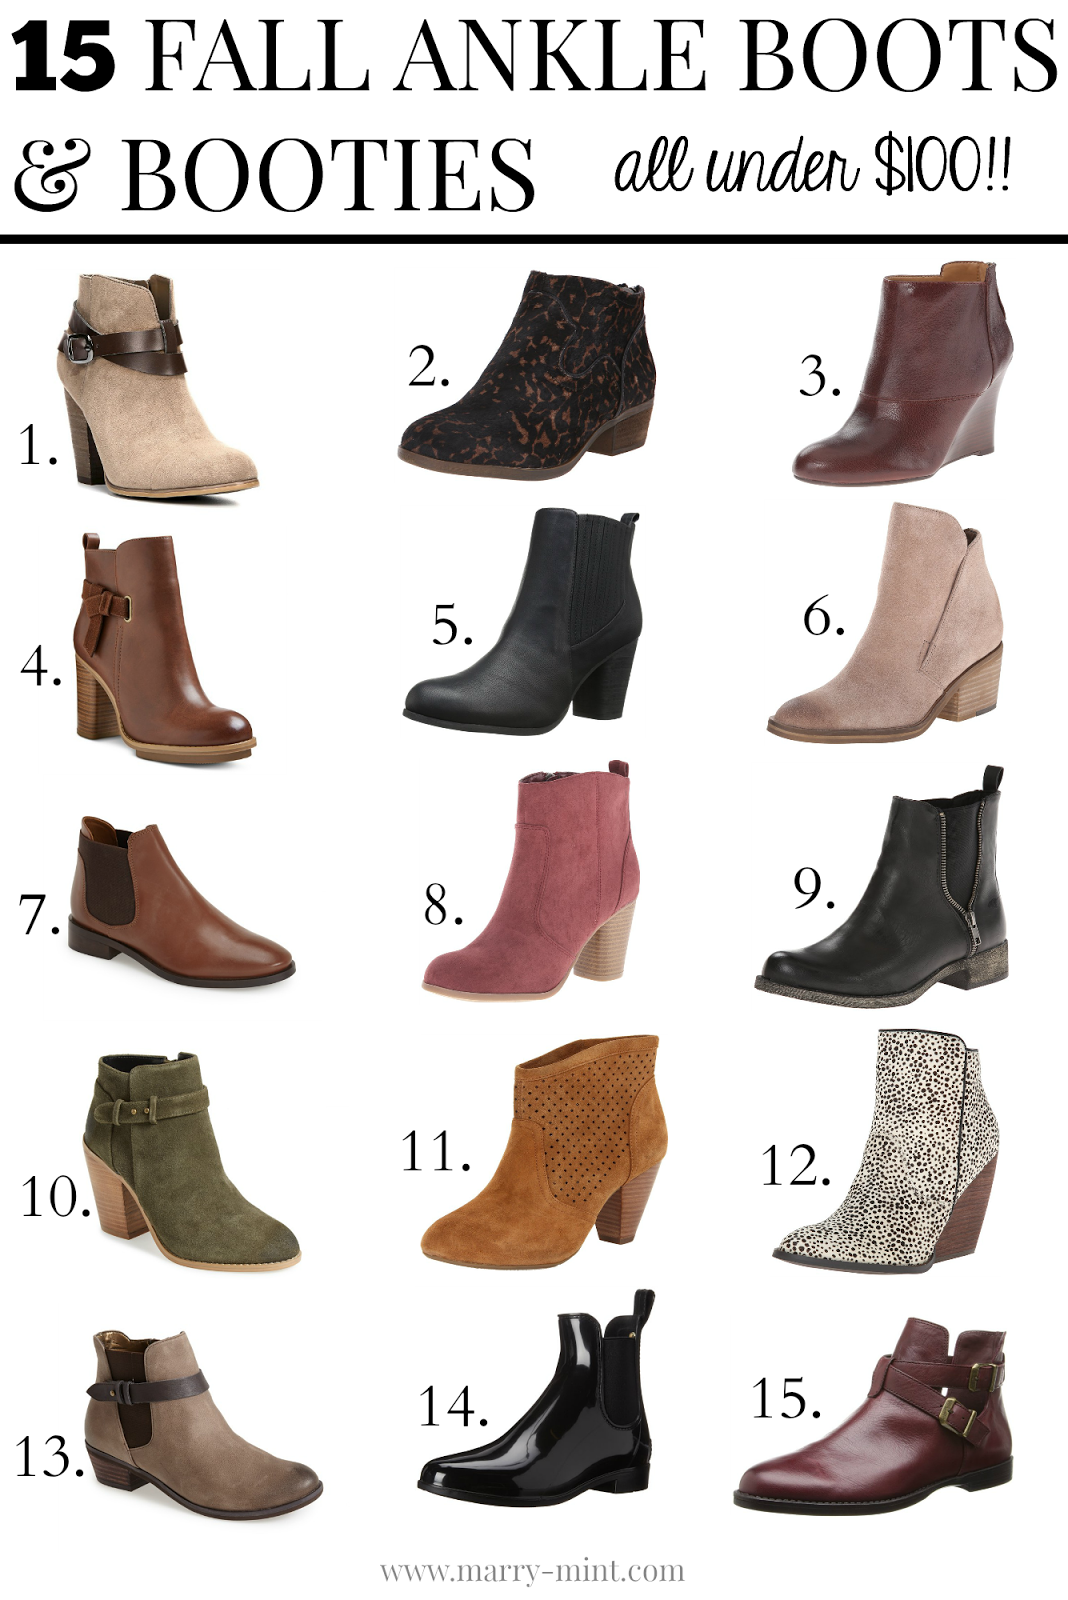 Marry Mint: Fall Ankle Boots & Booties   Promo Codes!